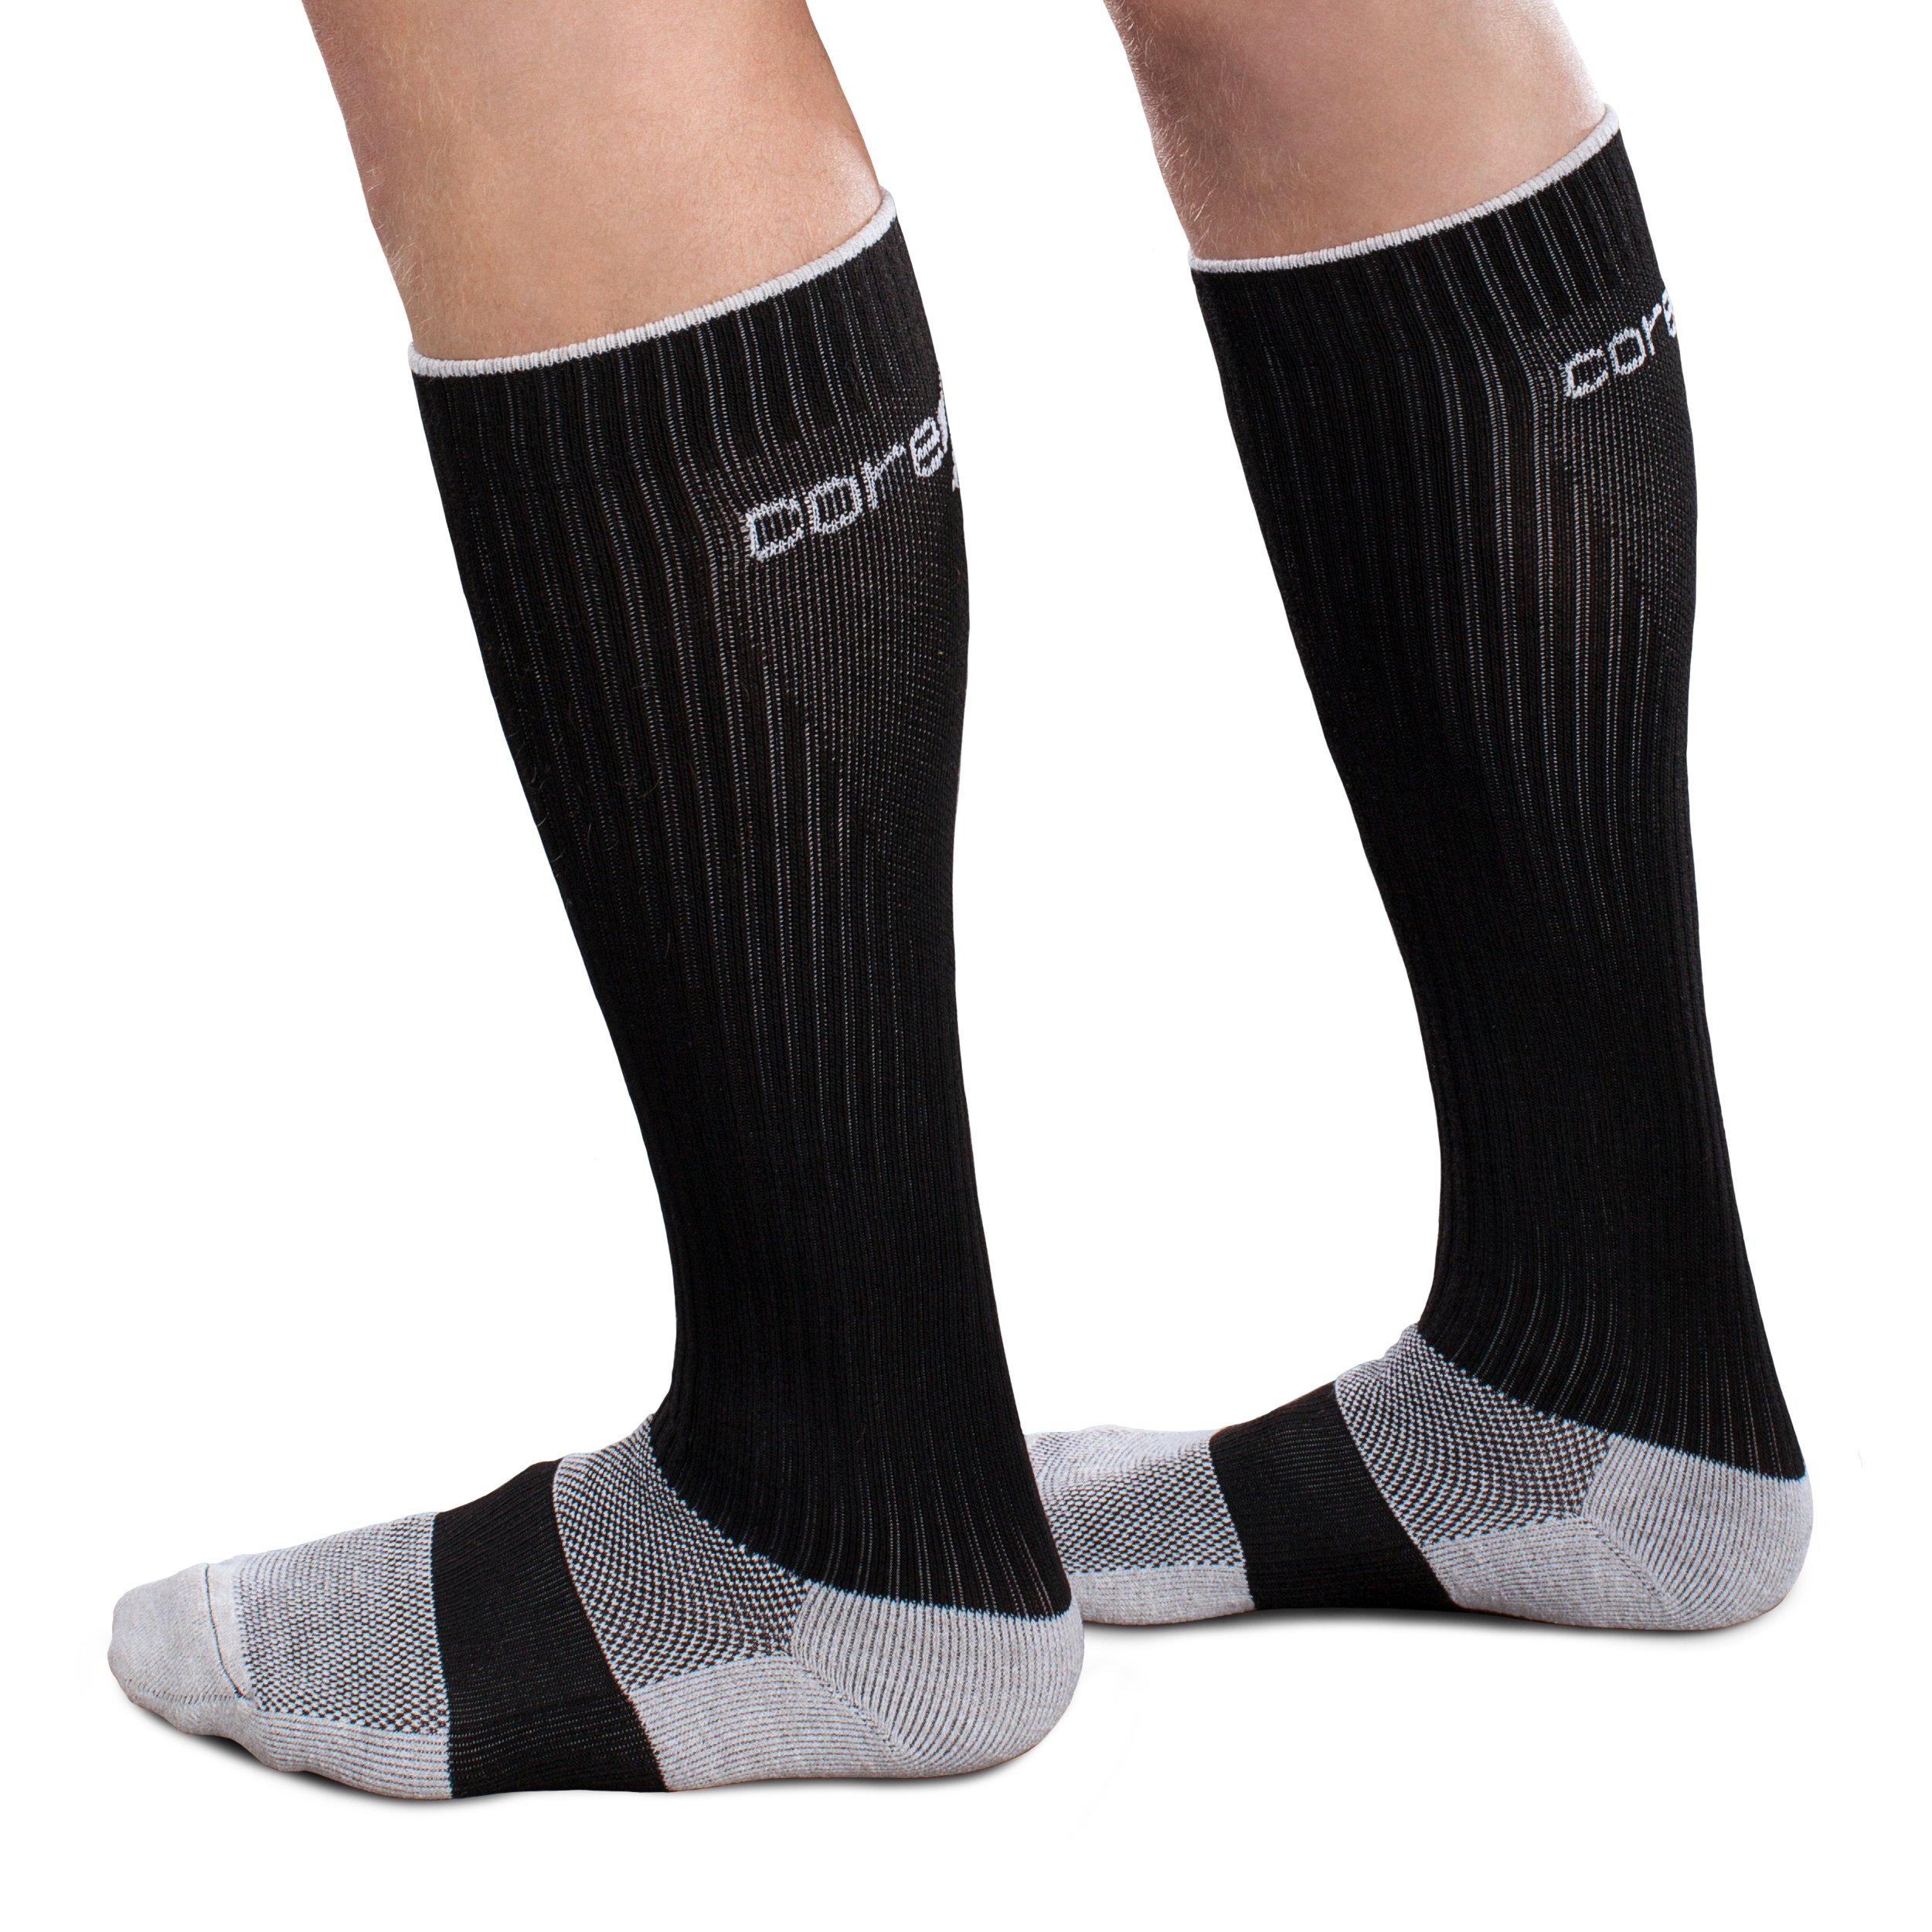 CoreSport Athletic Performance Compression Socks - 20-30mmHg Moderate Compression (Black, Large) by Core-Sport